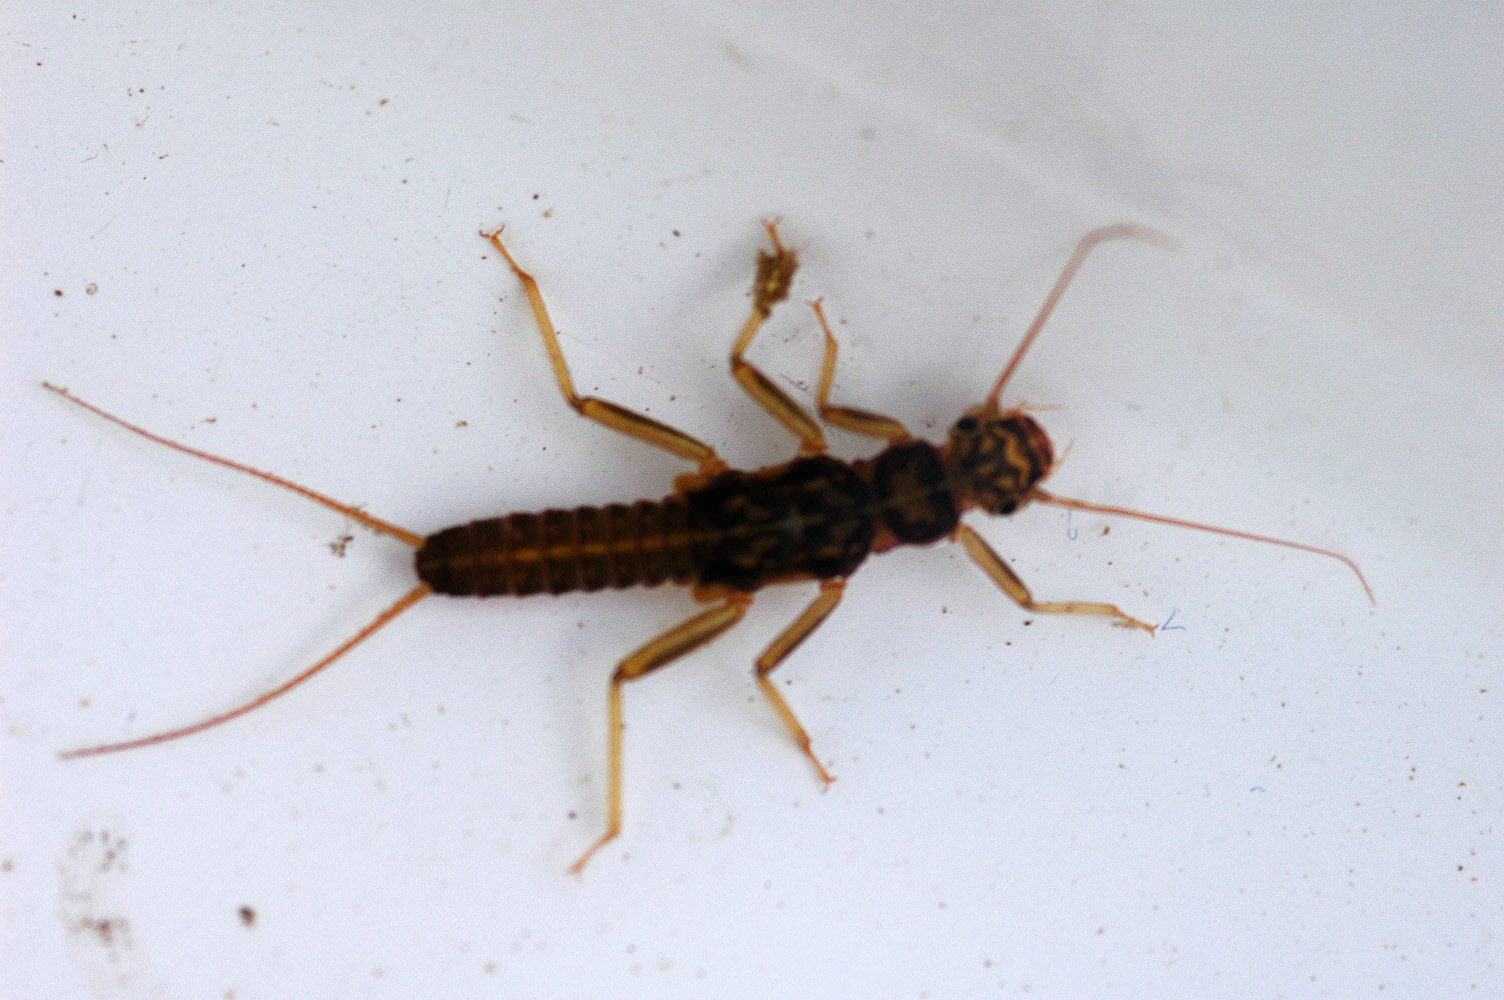 Skwala (Large Springflies) Stonefly Nymph from the Jocko River in Montana